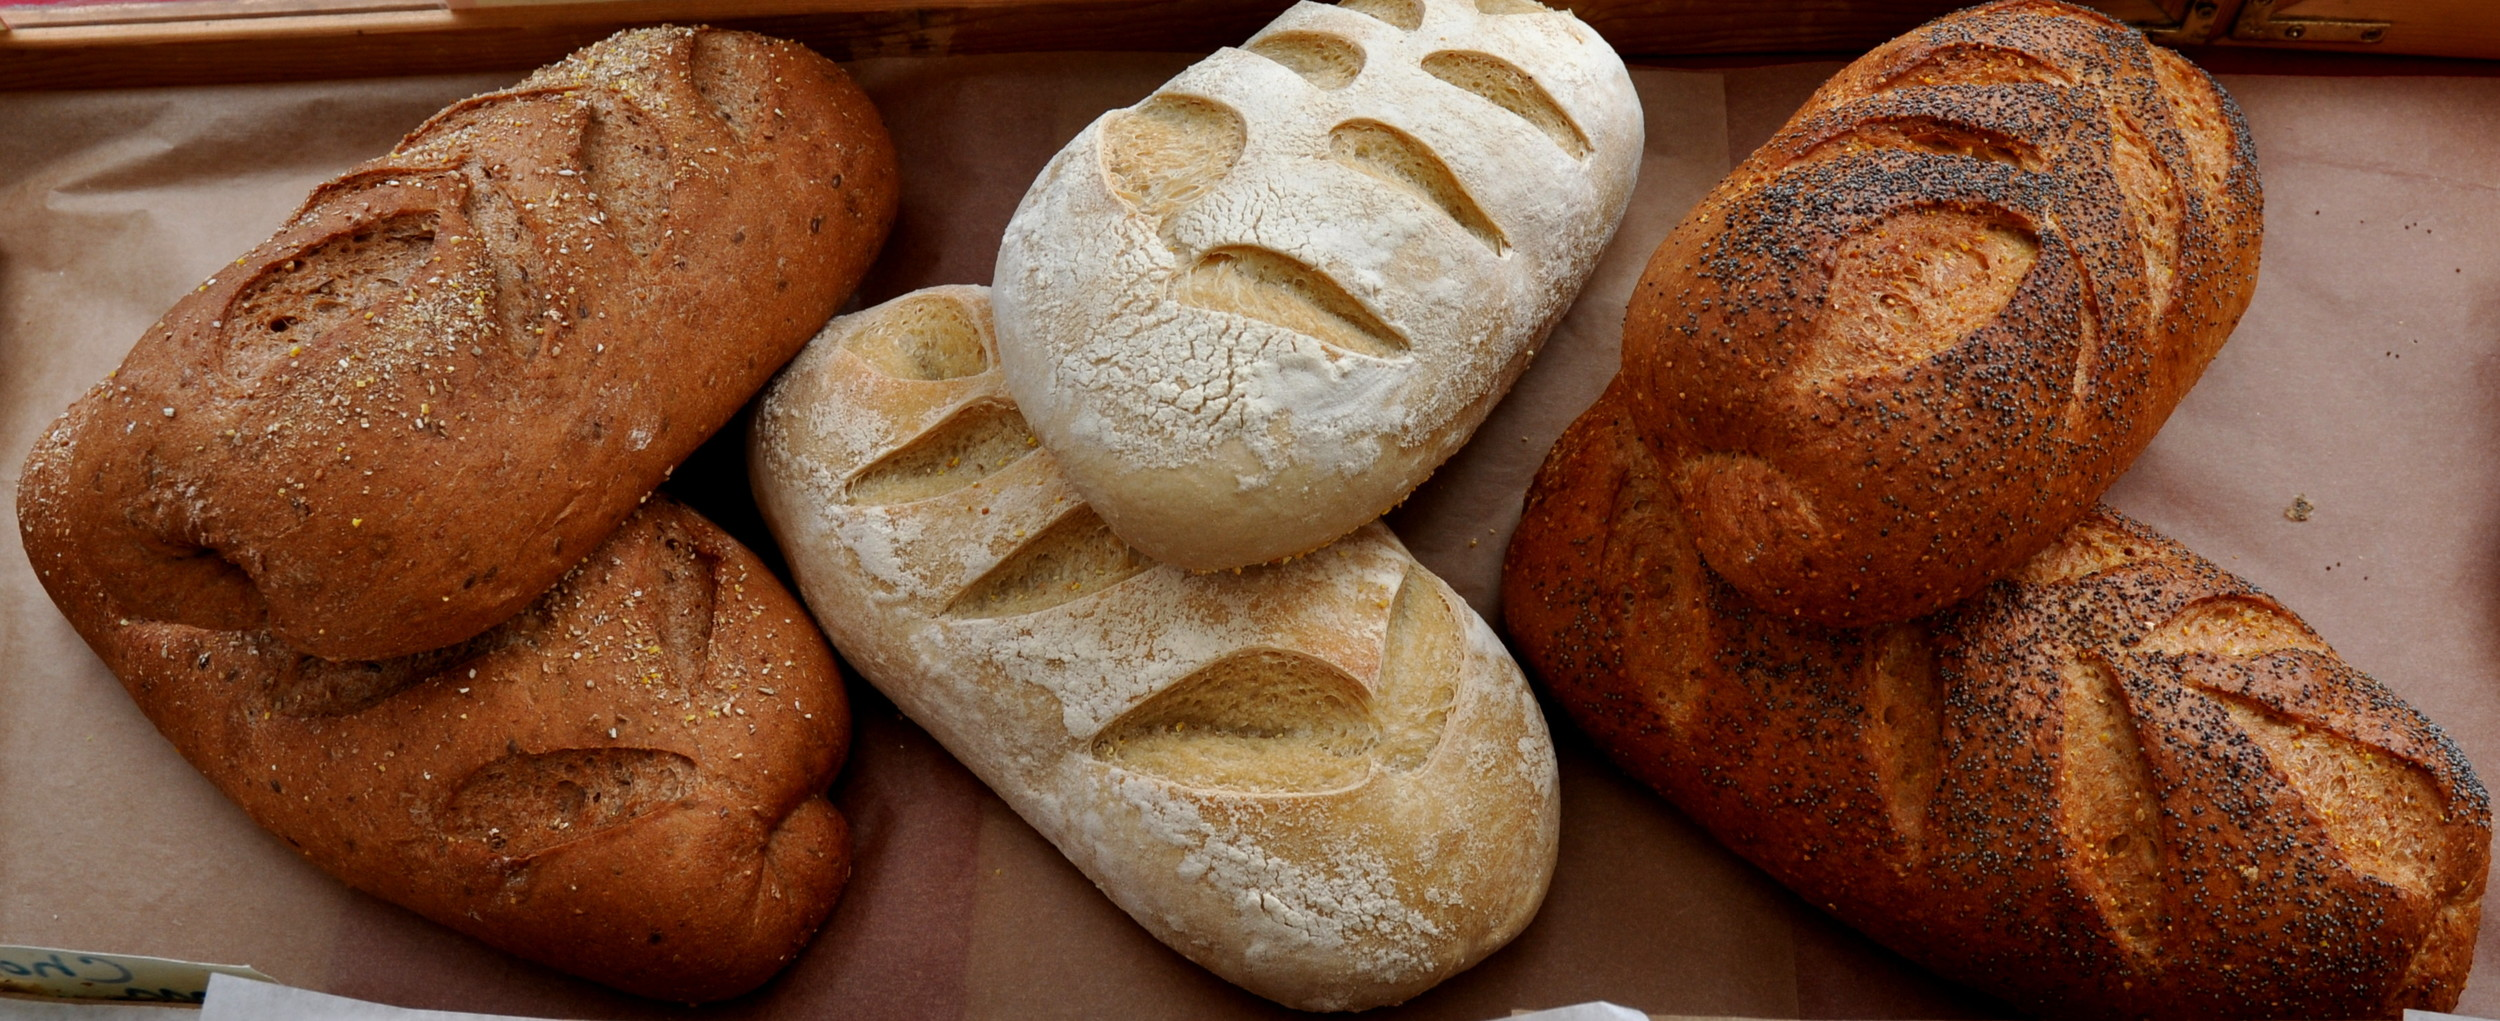 Artisan loaves of bread from Grateful Bread Bakery. Photo copyright 2013 by Zachary D. Lyons.